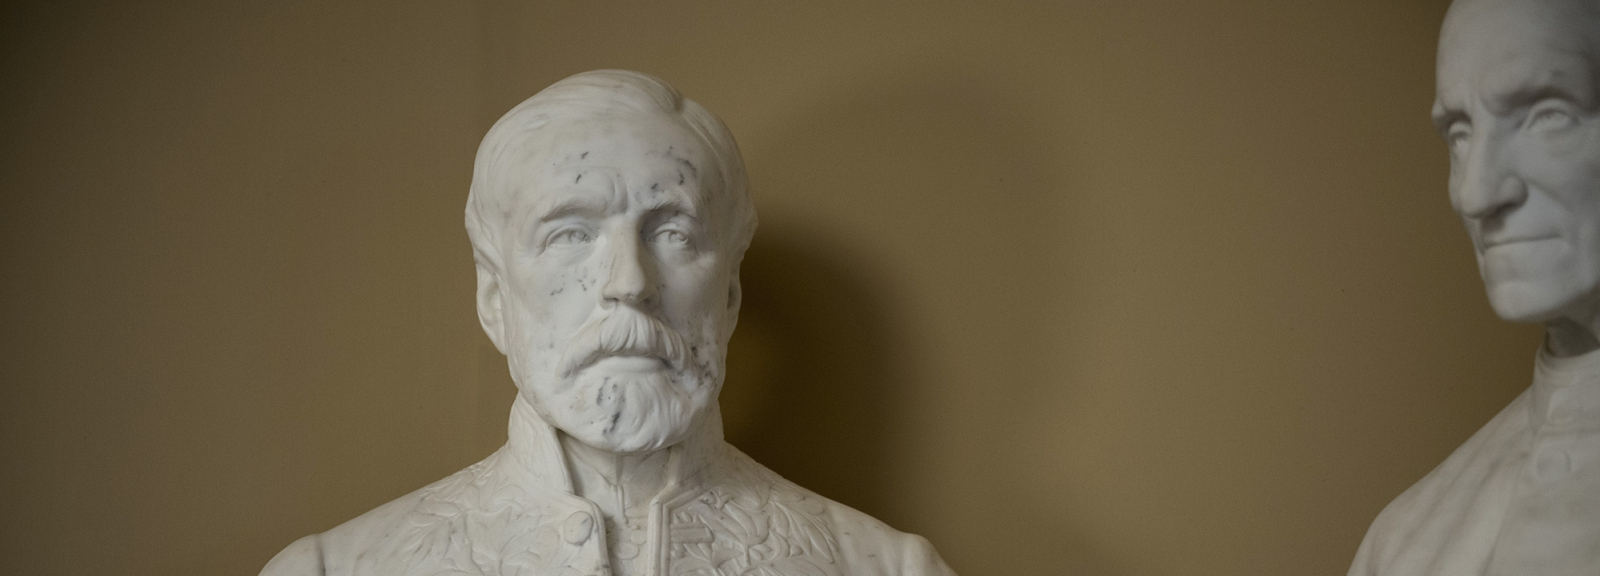 Alfred Legrand des Cloizeaux (1817-1897), French mineralogist © MNHN - Bruno Jay